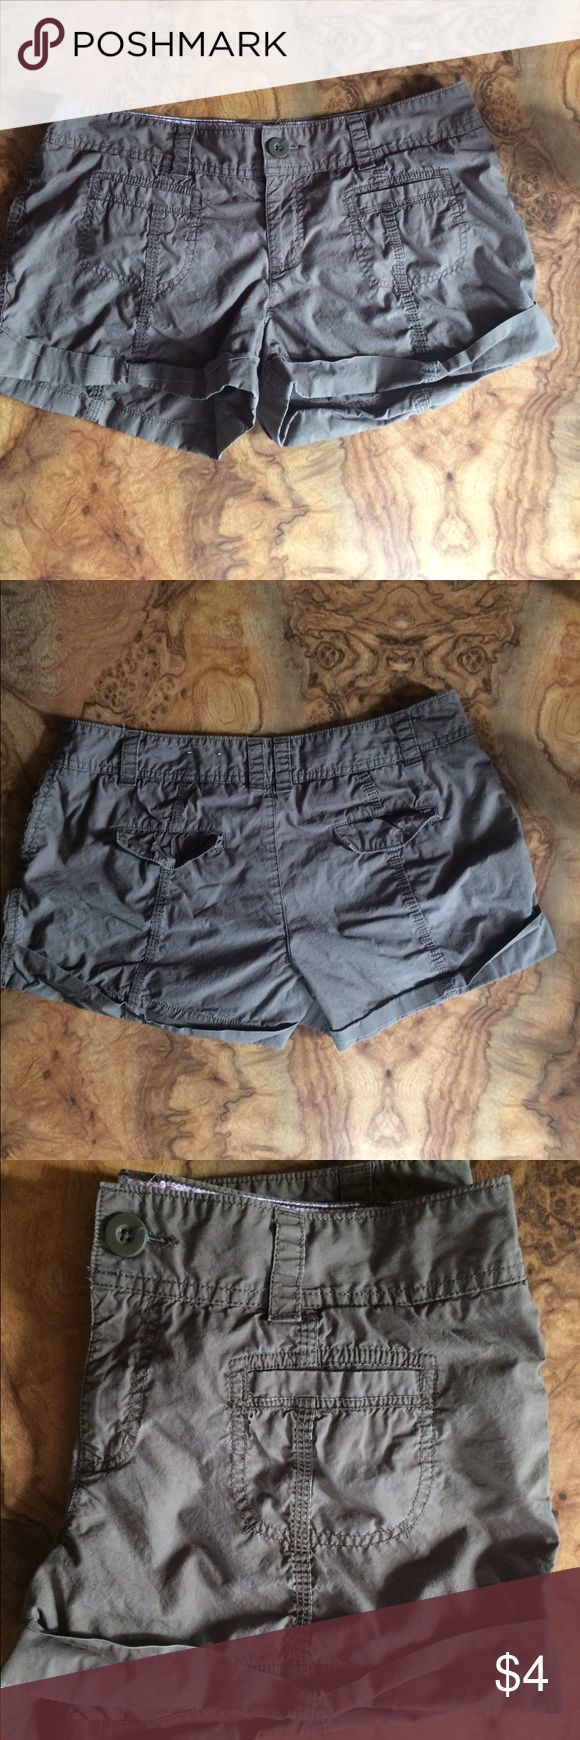 Juniors shorts Size 13 juniors shorts. Color is olive green. SO Shorts